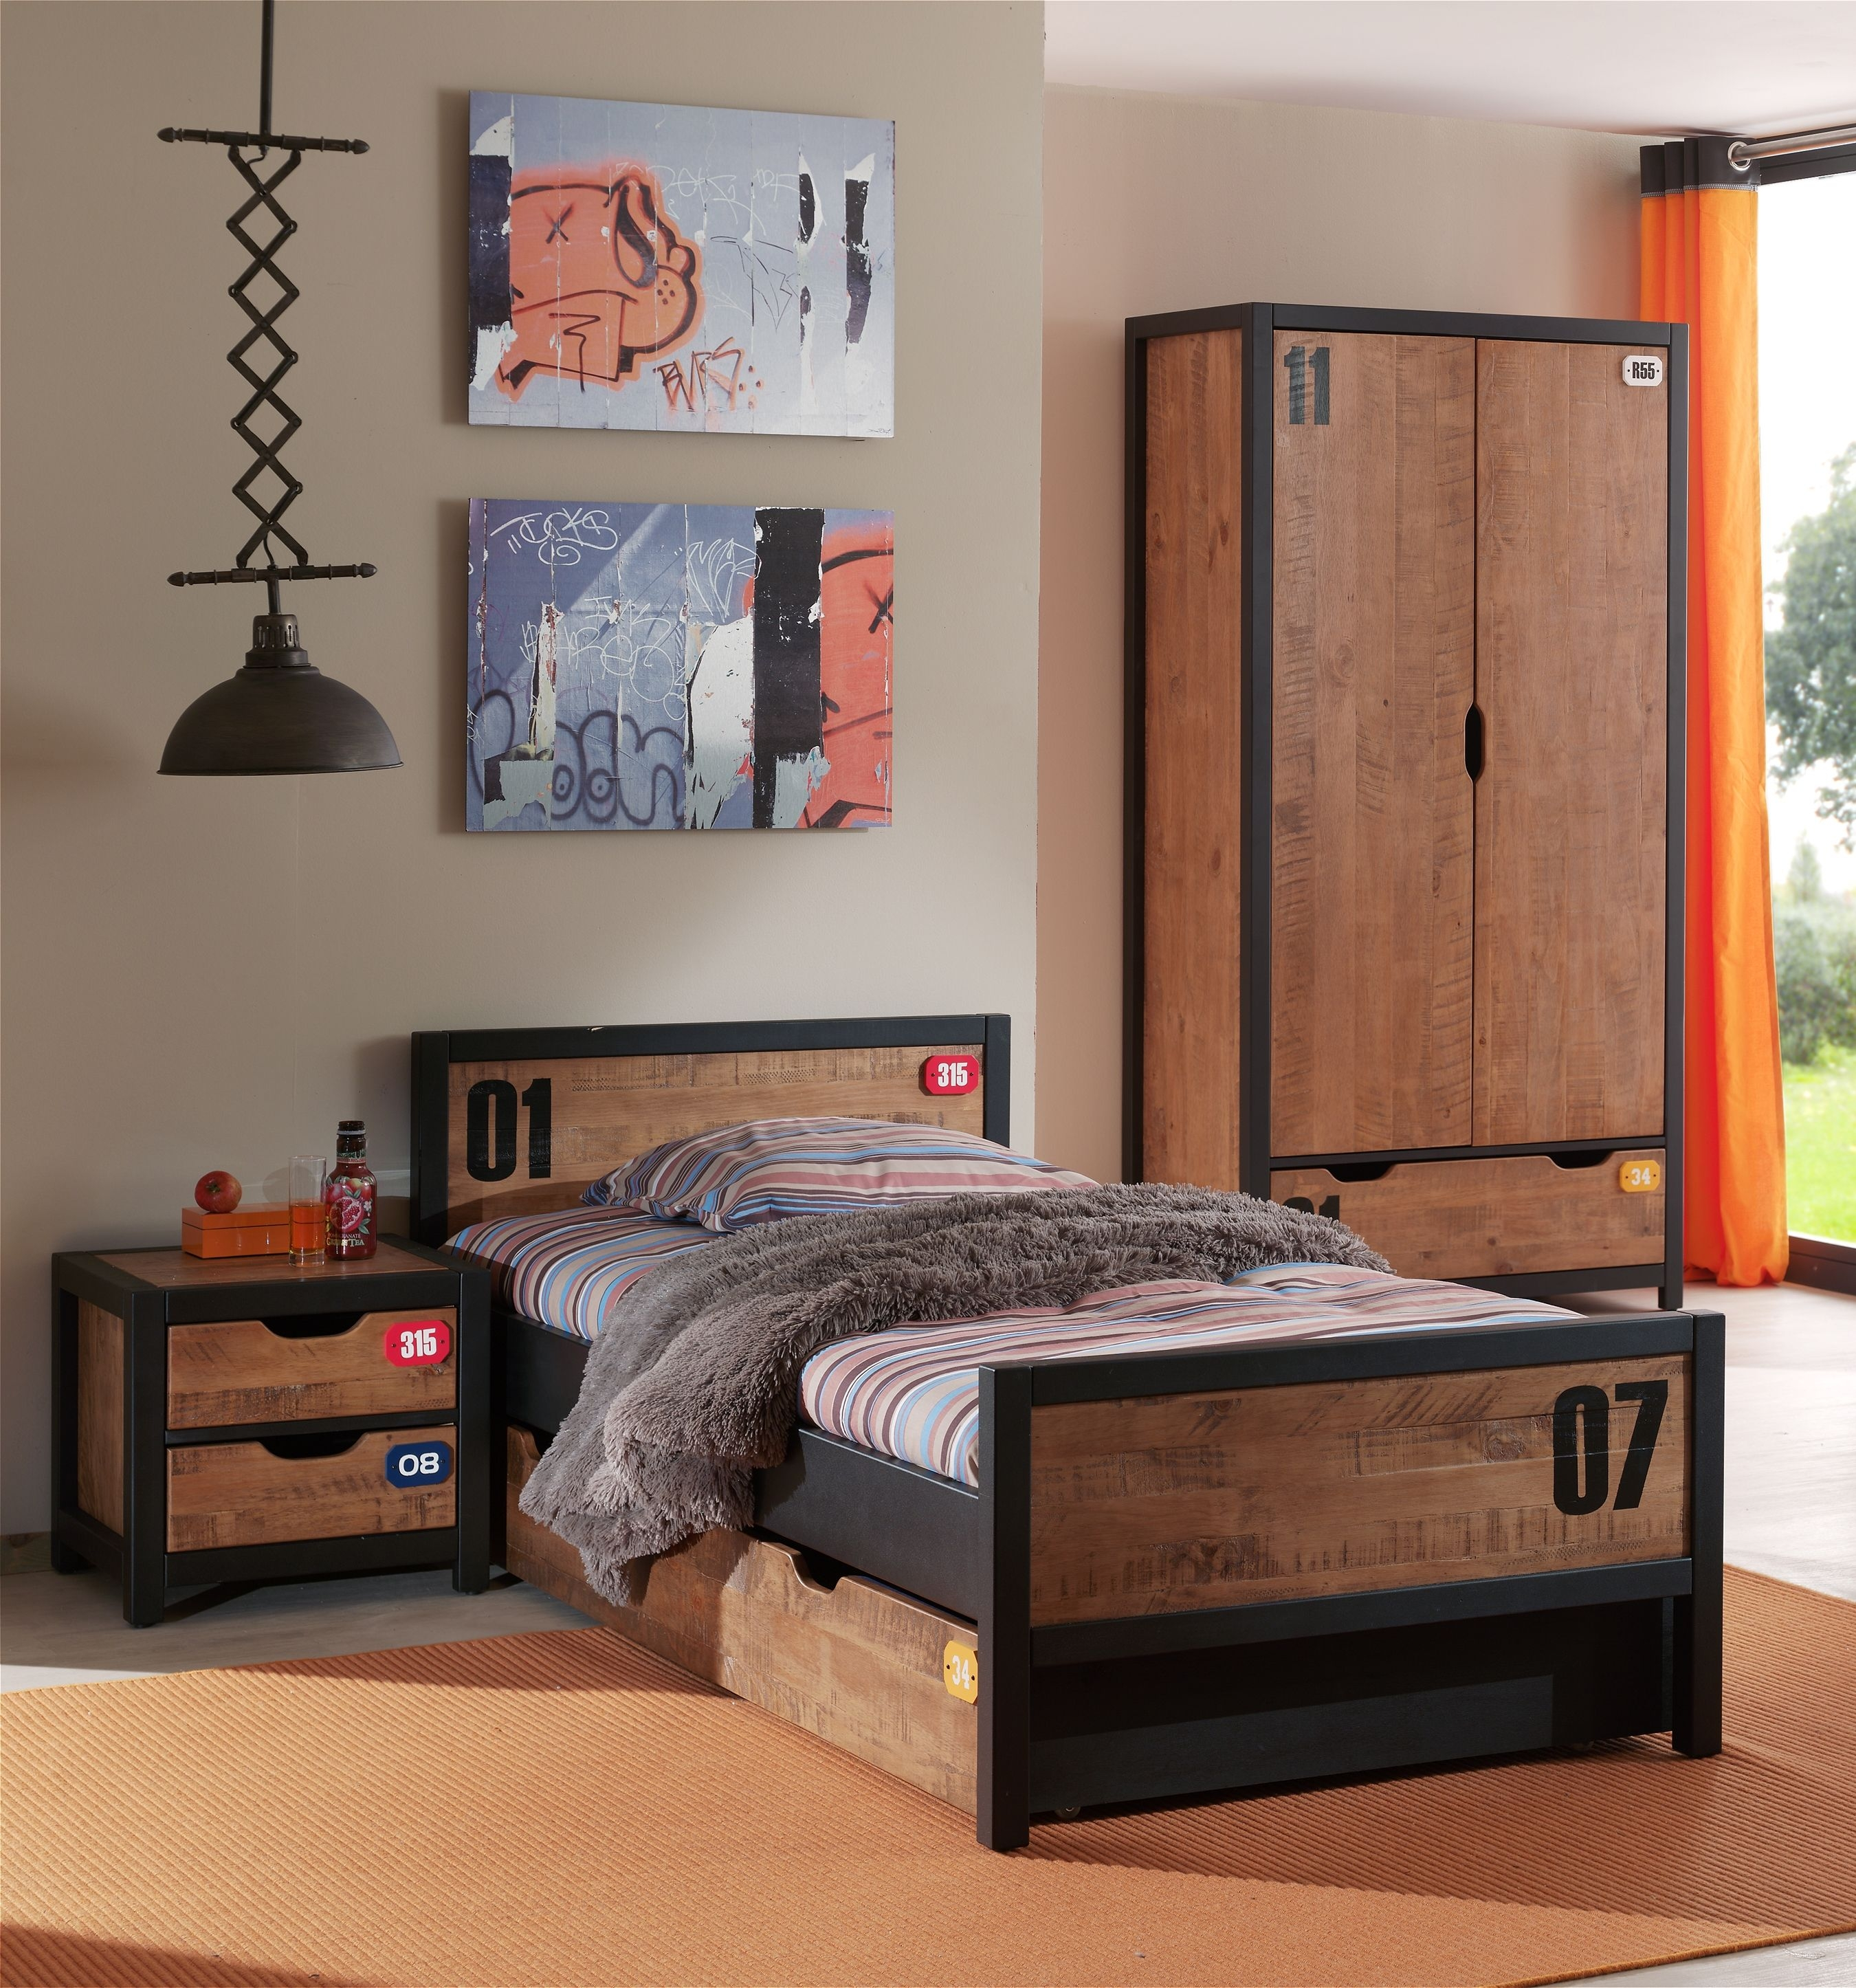 chambre avec armoire 2 portes bois massif marron industriel. Black Bedroom Furniture Sets. Home Design Ideas